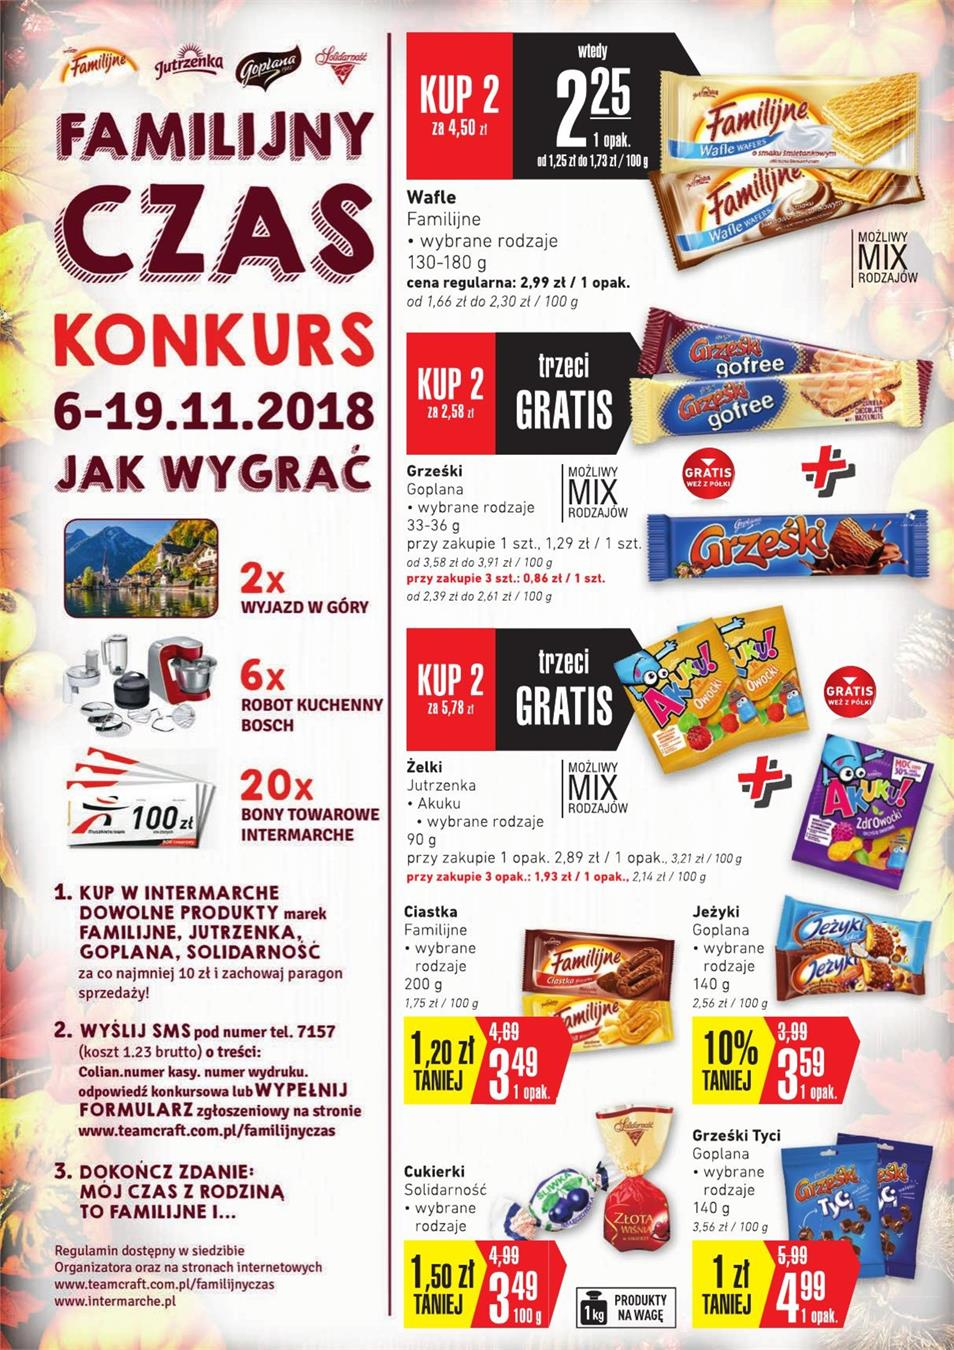 Gazetka SCA PR Polska Sp. z o.o. nr 3 od 2018-11-06 do 2018-11-12